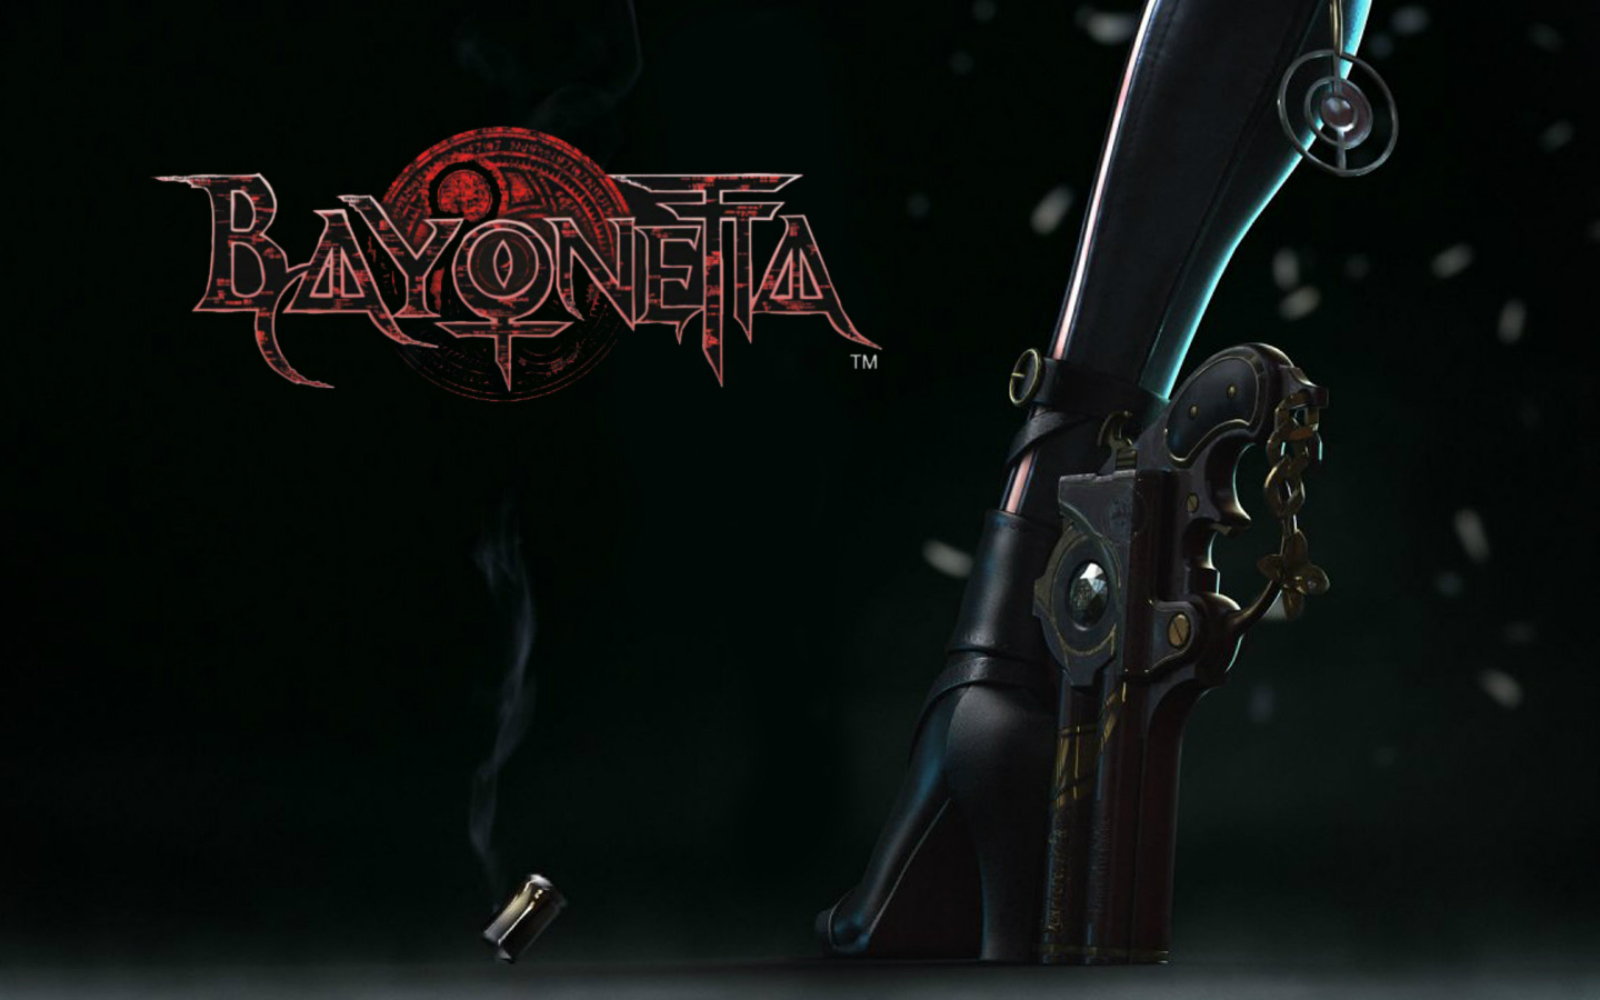 http://4.bp.blogspot.com/-Yt_vmXvhGyU/TlrYXkFN73I/AAAAAAAAAvA/2ncvhVDt2qA/s1600/bayonetta_game_logo_background_www.Vvallpaper.net_.jpg